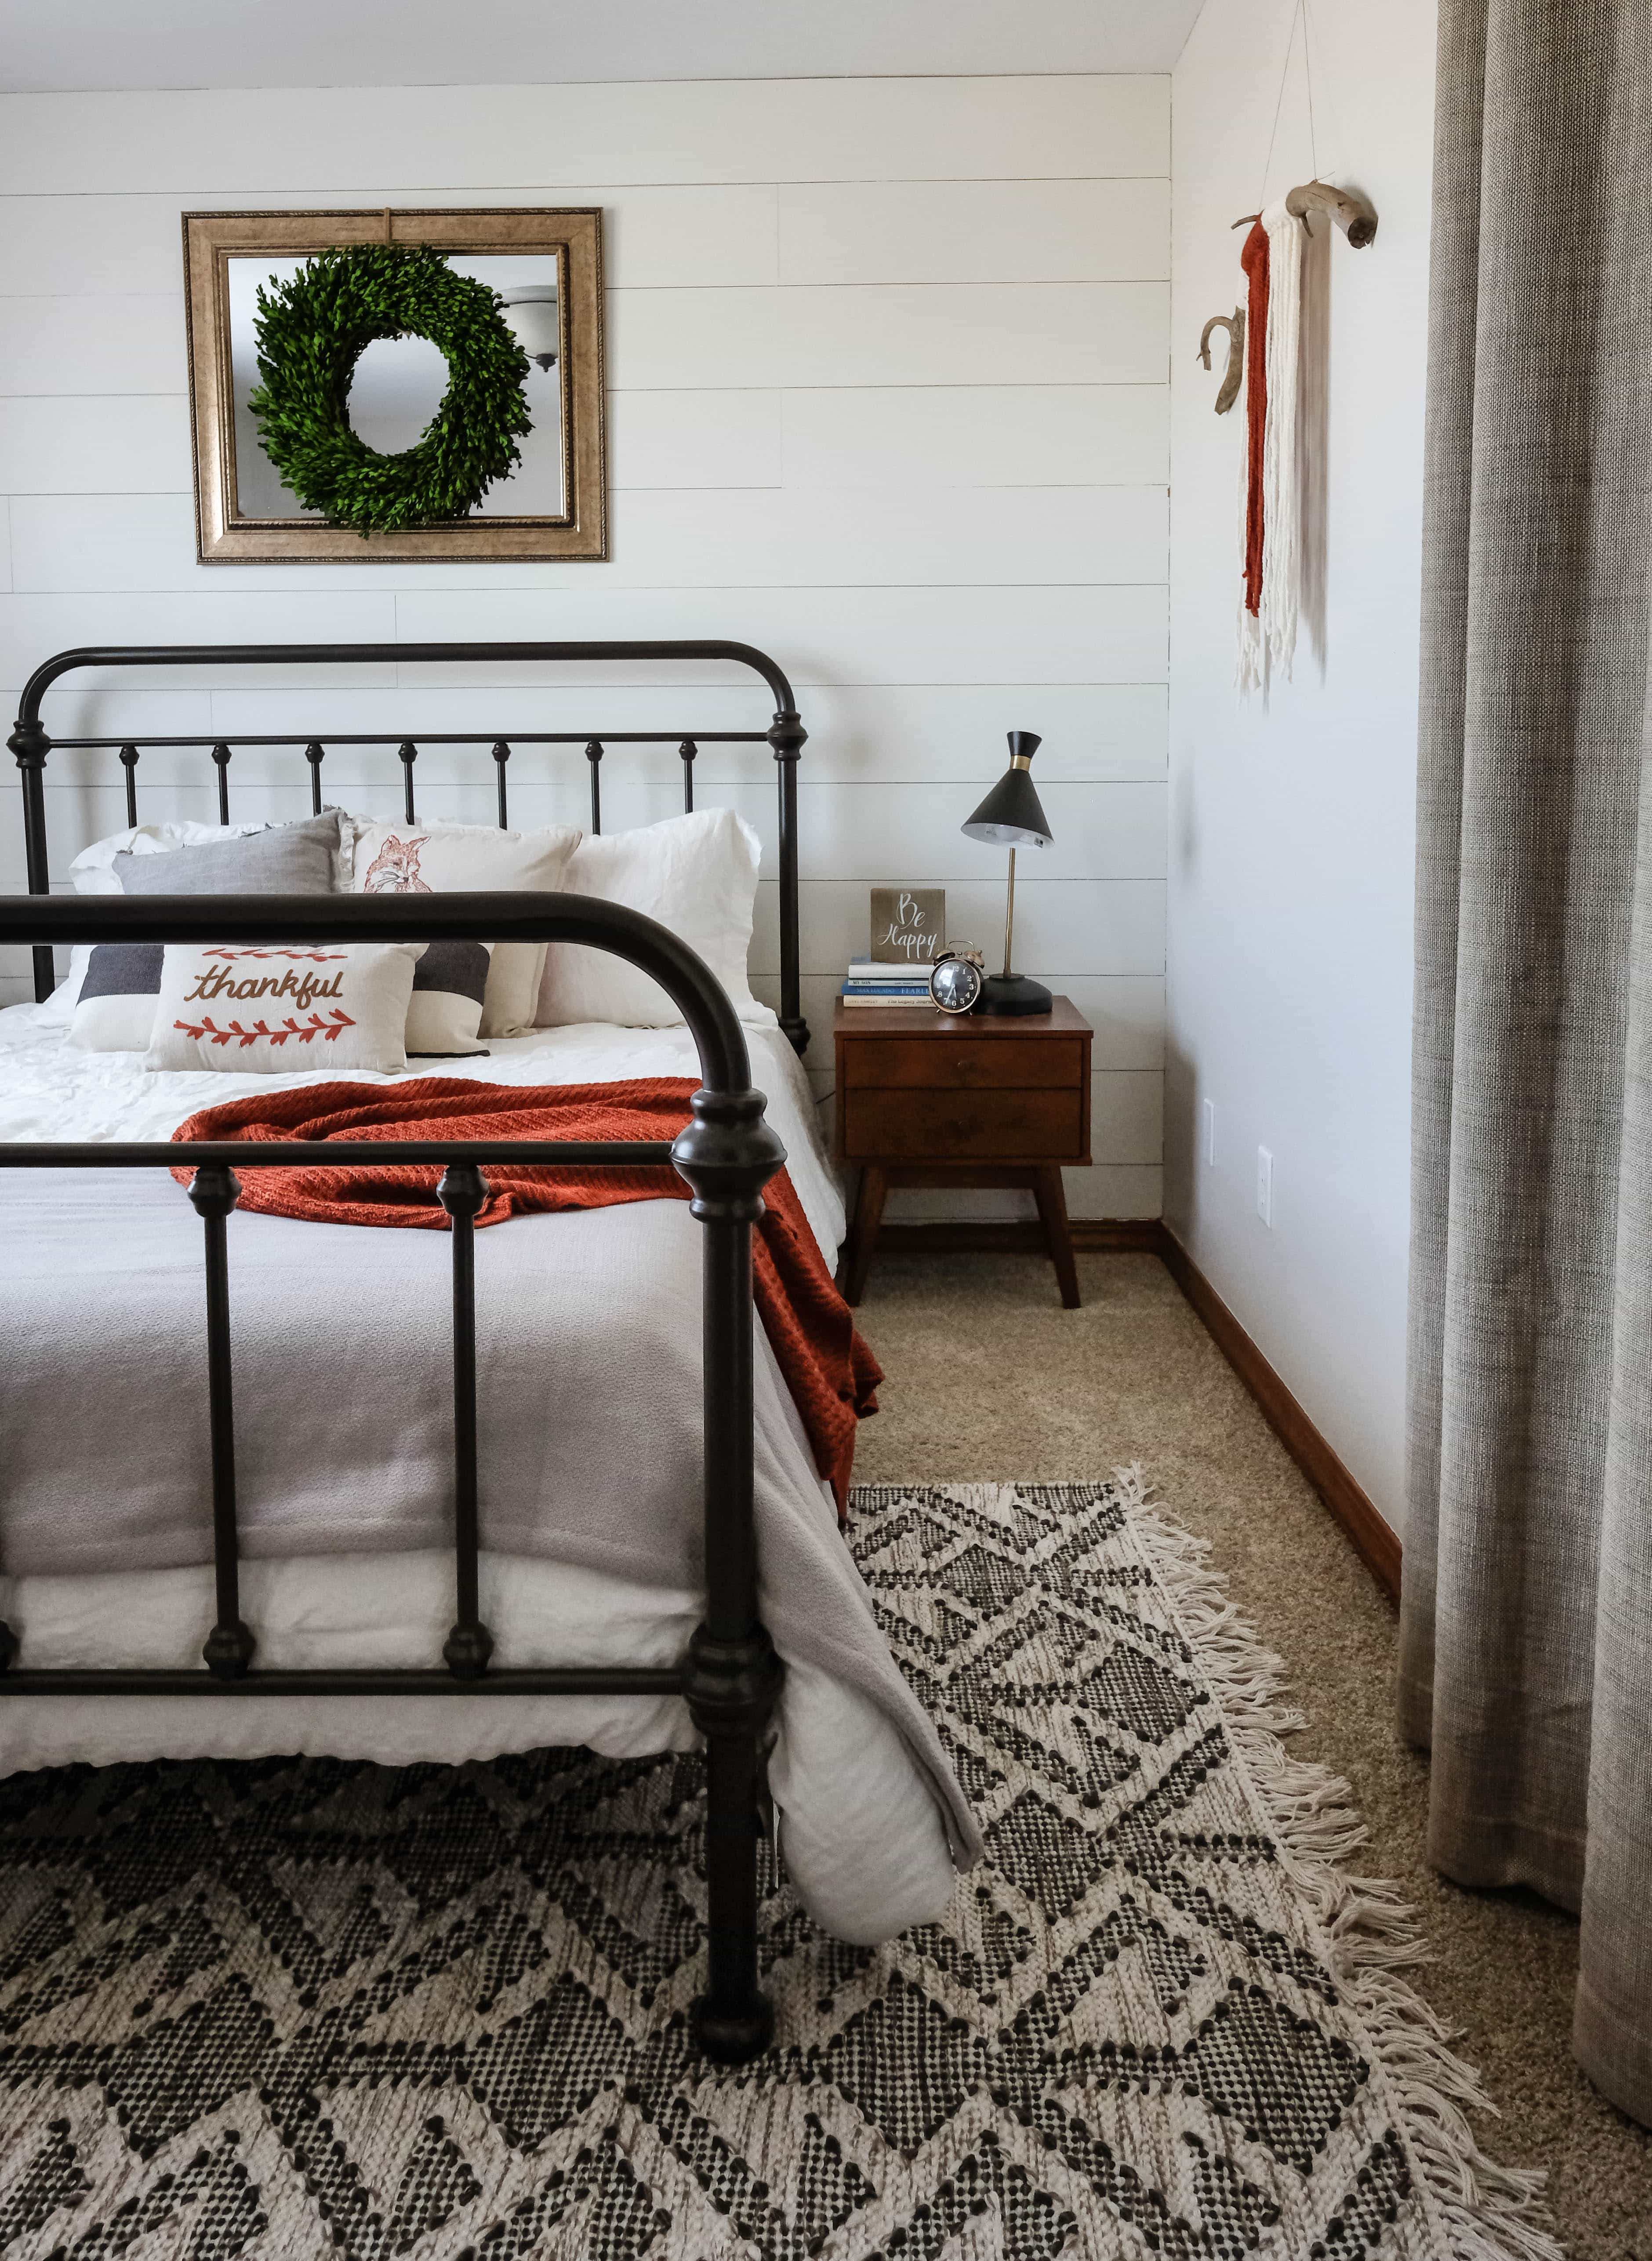 Modern Farmhouse Guest Bedroom | See how to easily blend the farmhouse look with modern finishes to create a space your guests will love!